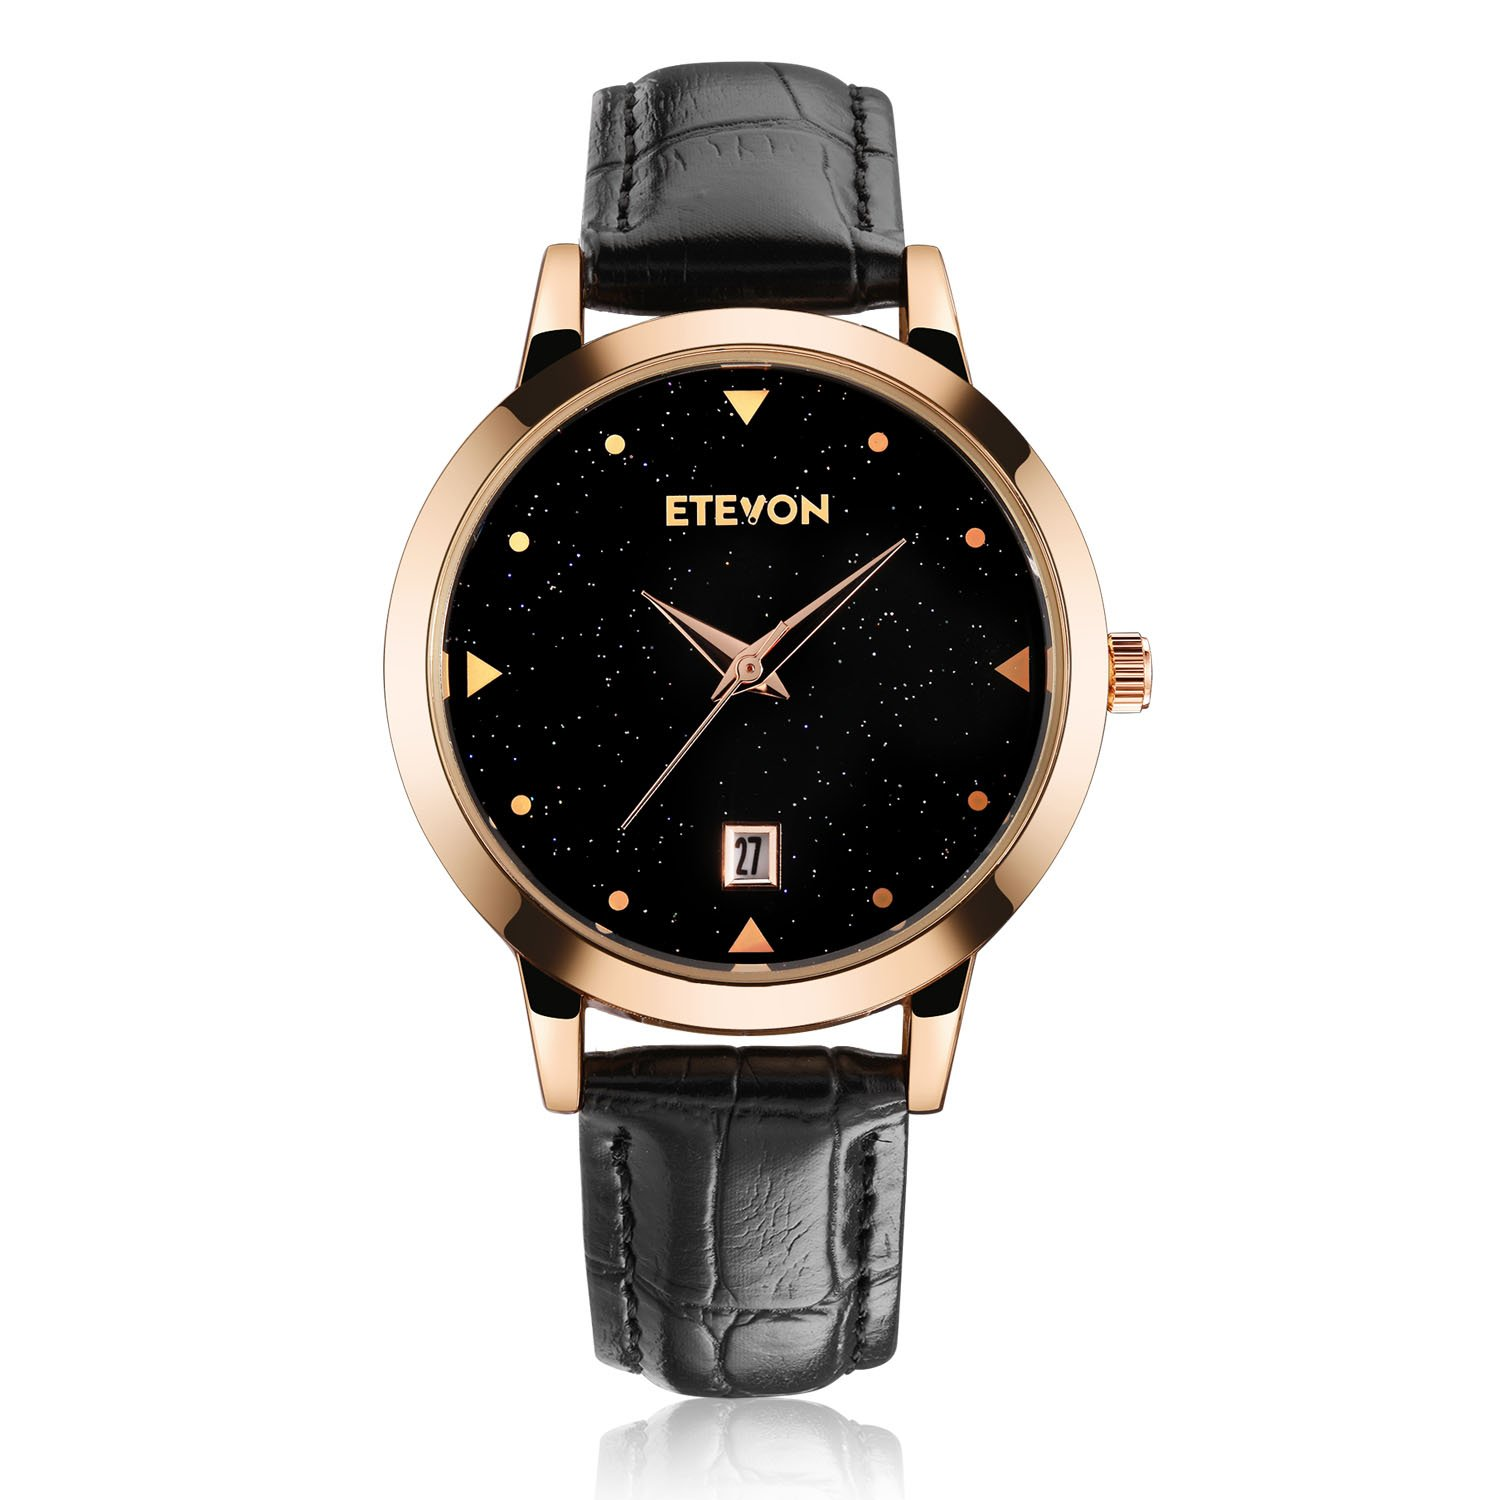 ETEVON Women's Quartz Analog Watch with Starlight Dial with Date, Black Leather Band and Rose Gold Case, Fashion Casual Dress Wrist Watches for Ladies